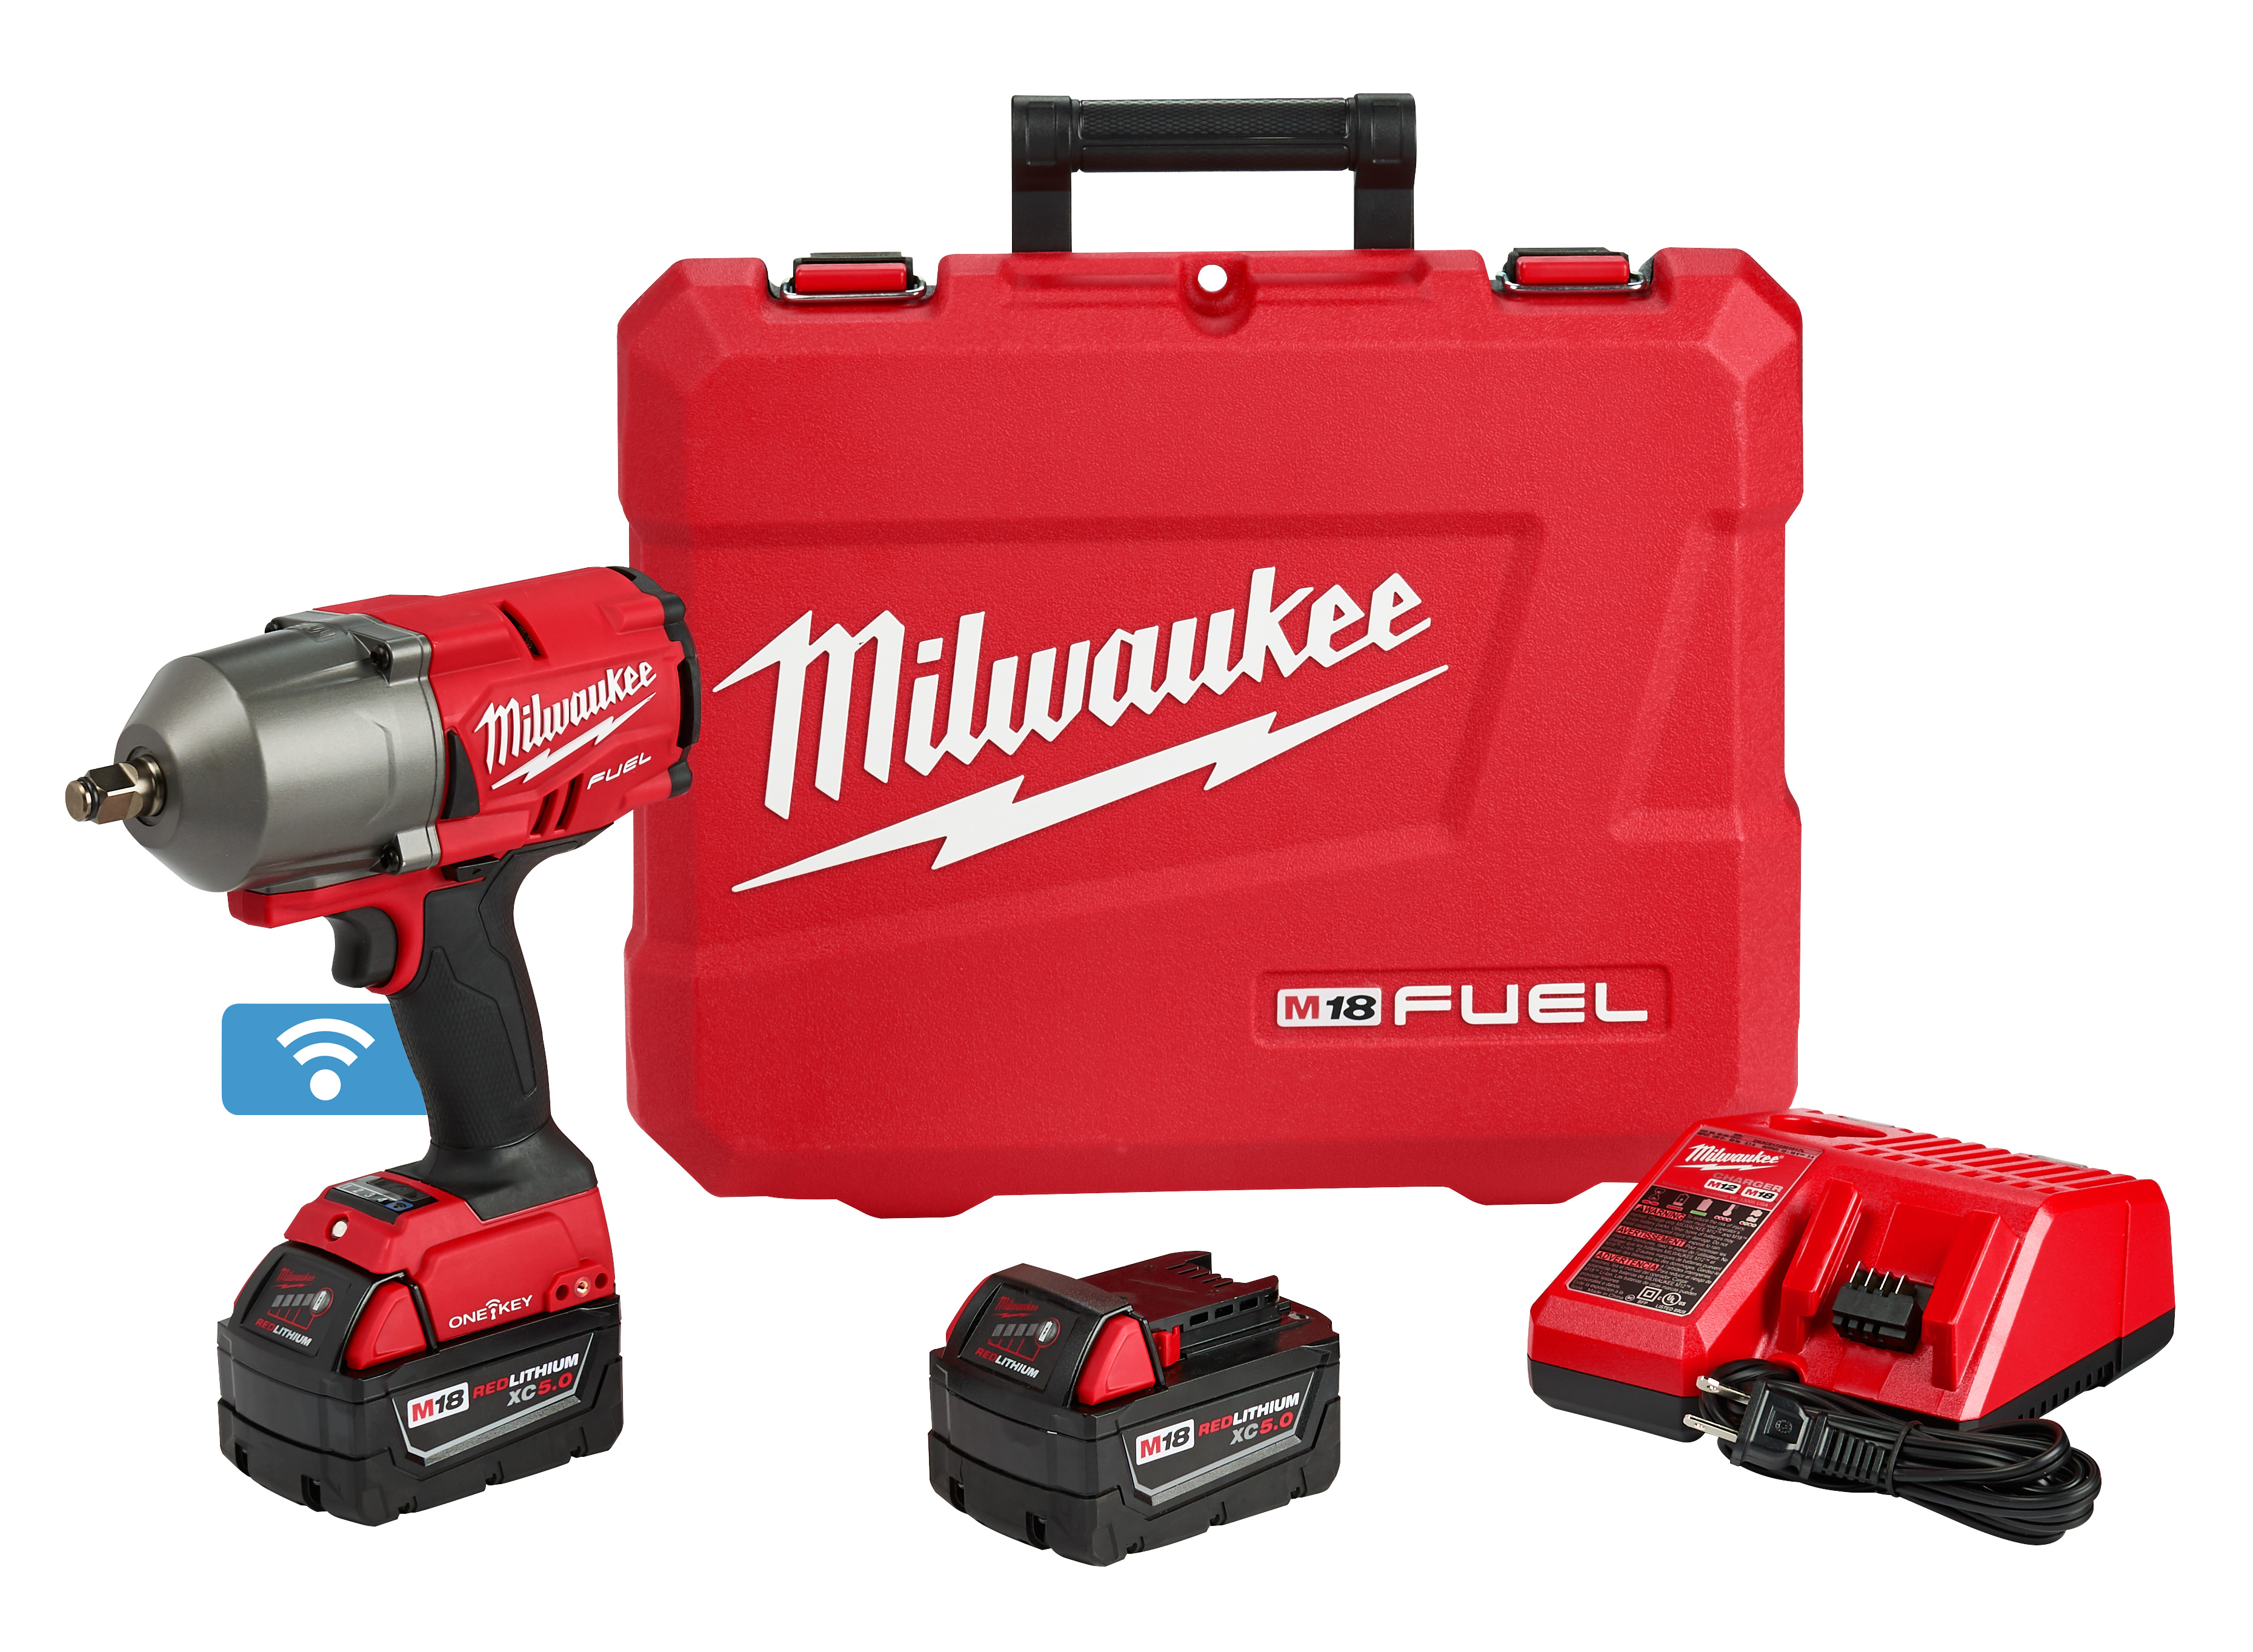 Milwaukee® M18™ FUEL™ ONE-KEY® 2863-22 Cordless High Torque Impact Wrench, 1/2 in 4-Mode Straight Drive, 2100 bpm, 1000/1400 ft-lb Torque, 18 VDC, 8.39 in OAL